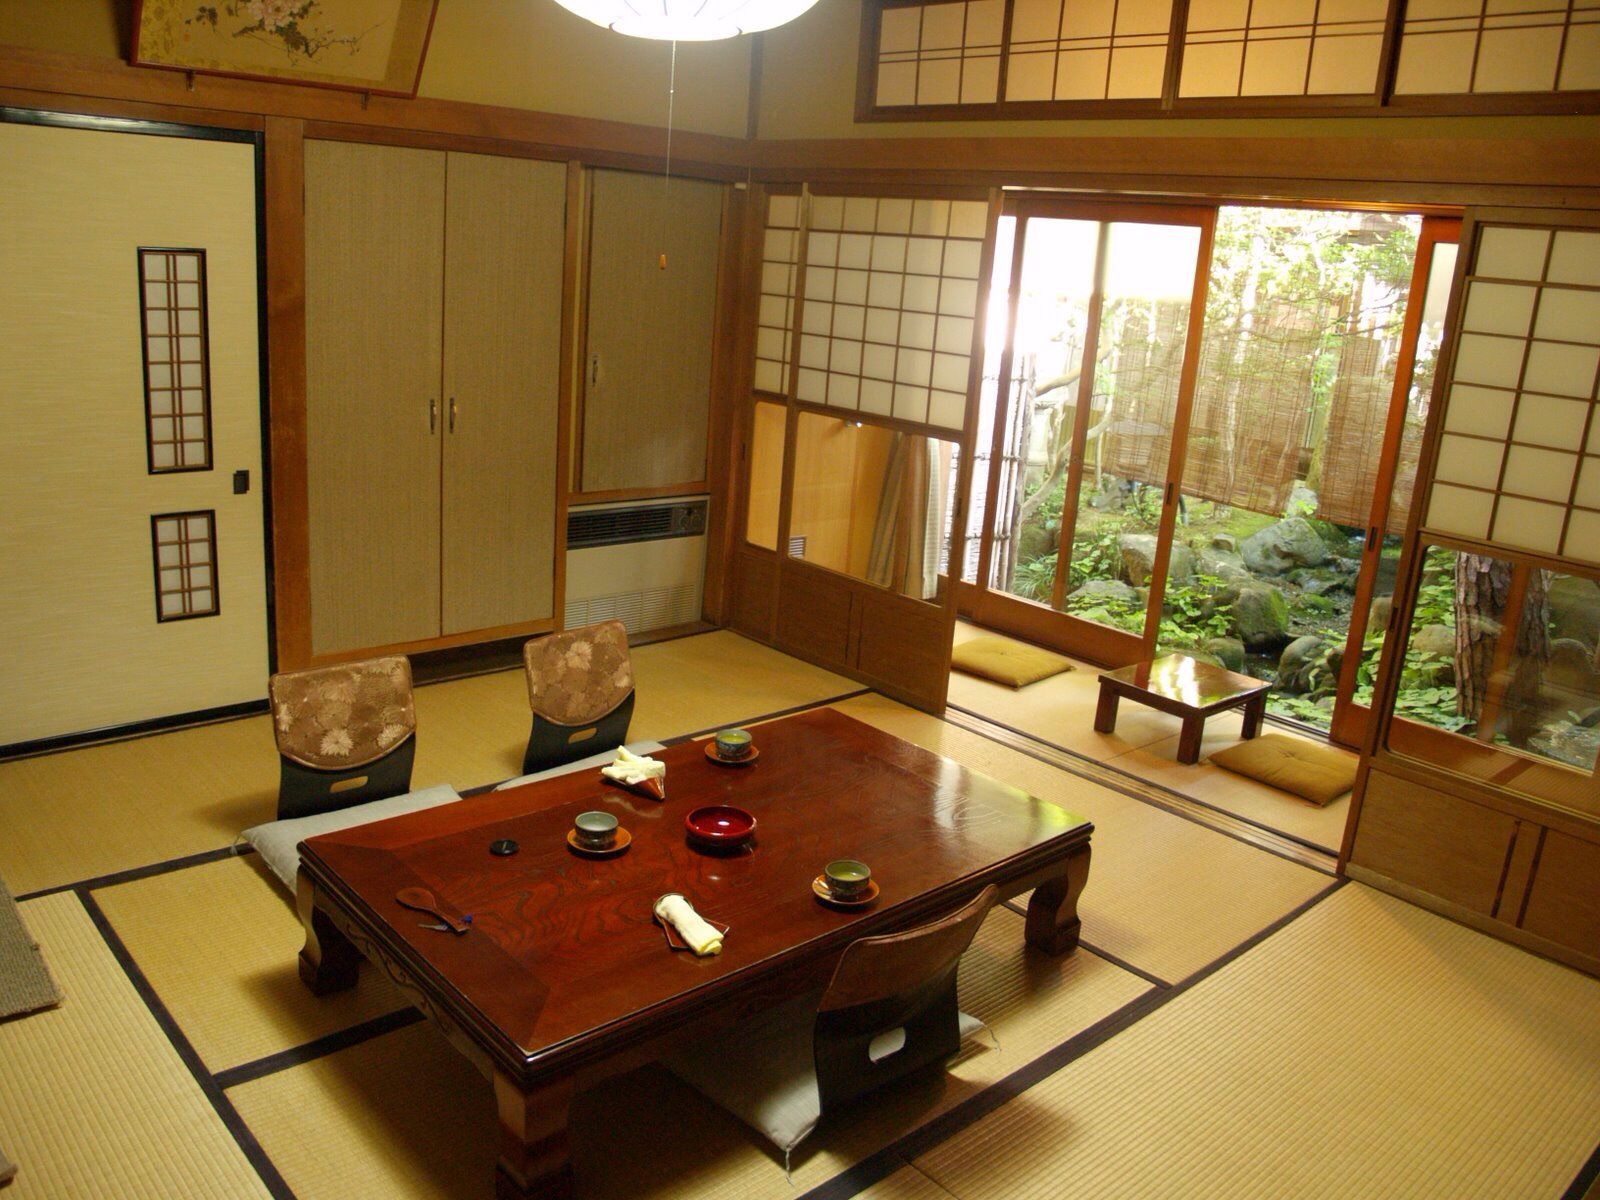 Comfortable Japanese Interor Design In Living Room With Brown Wooden